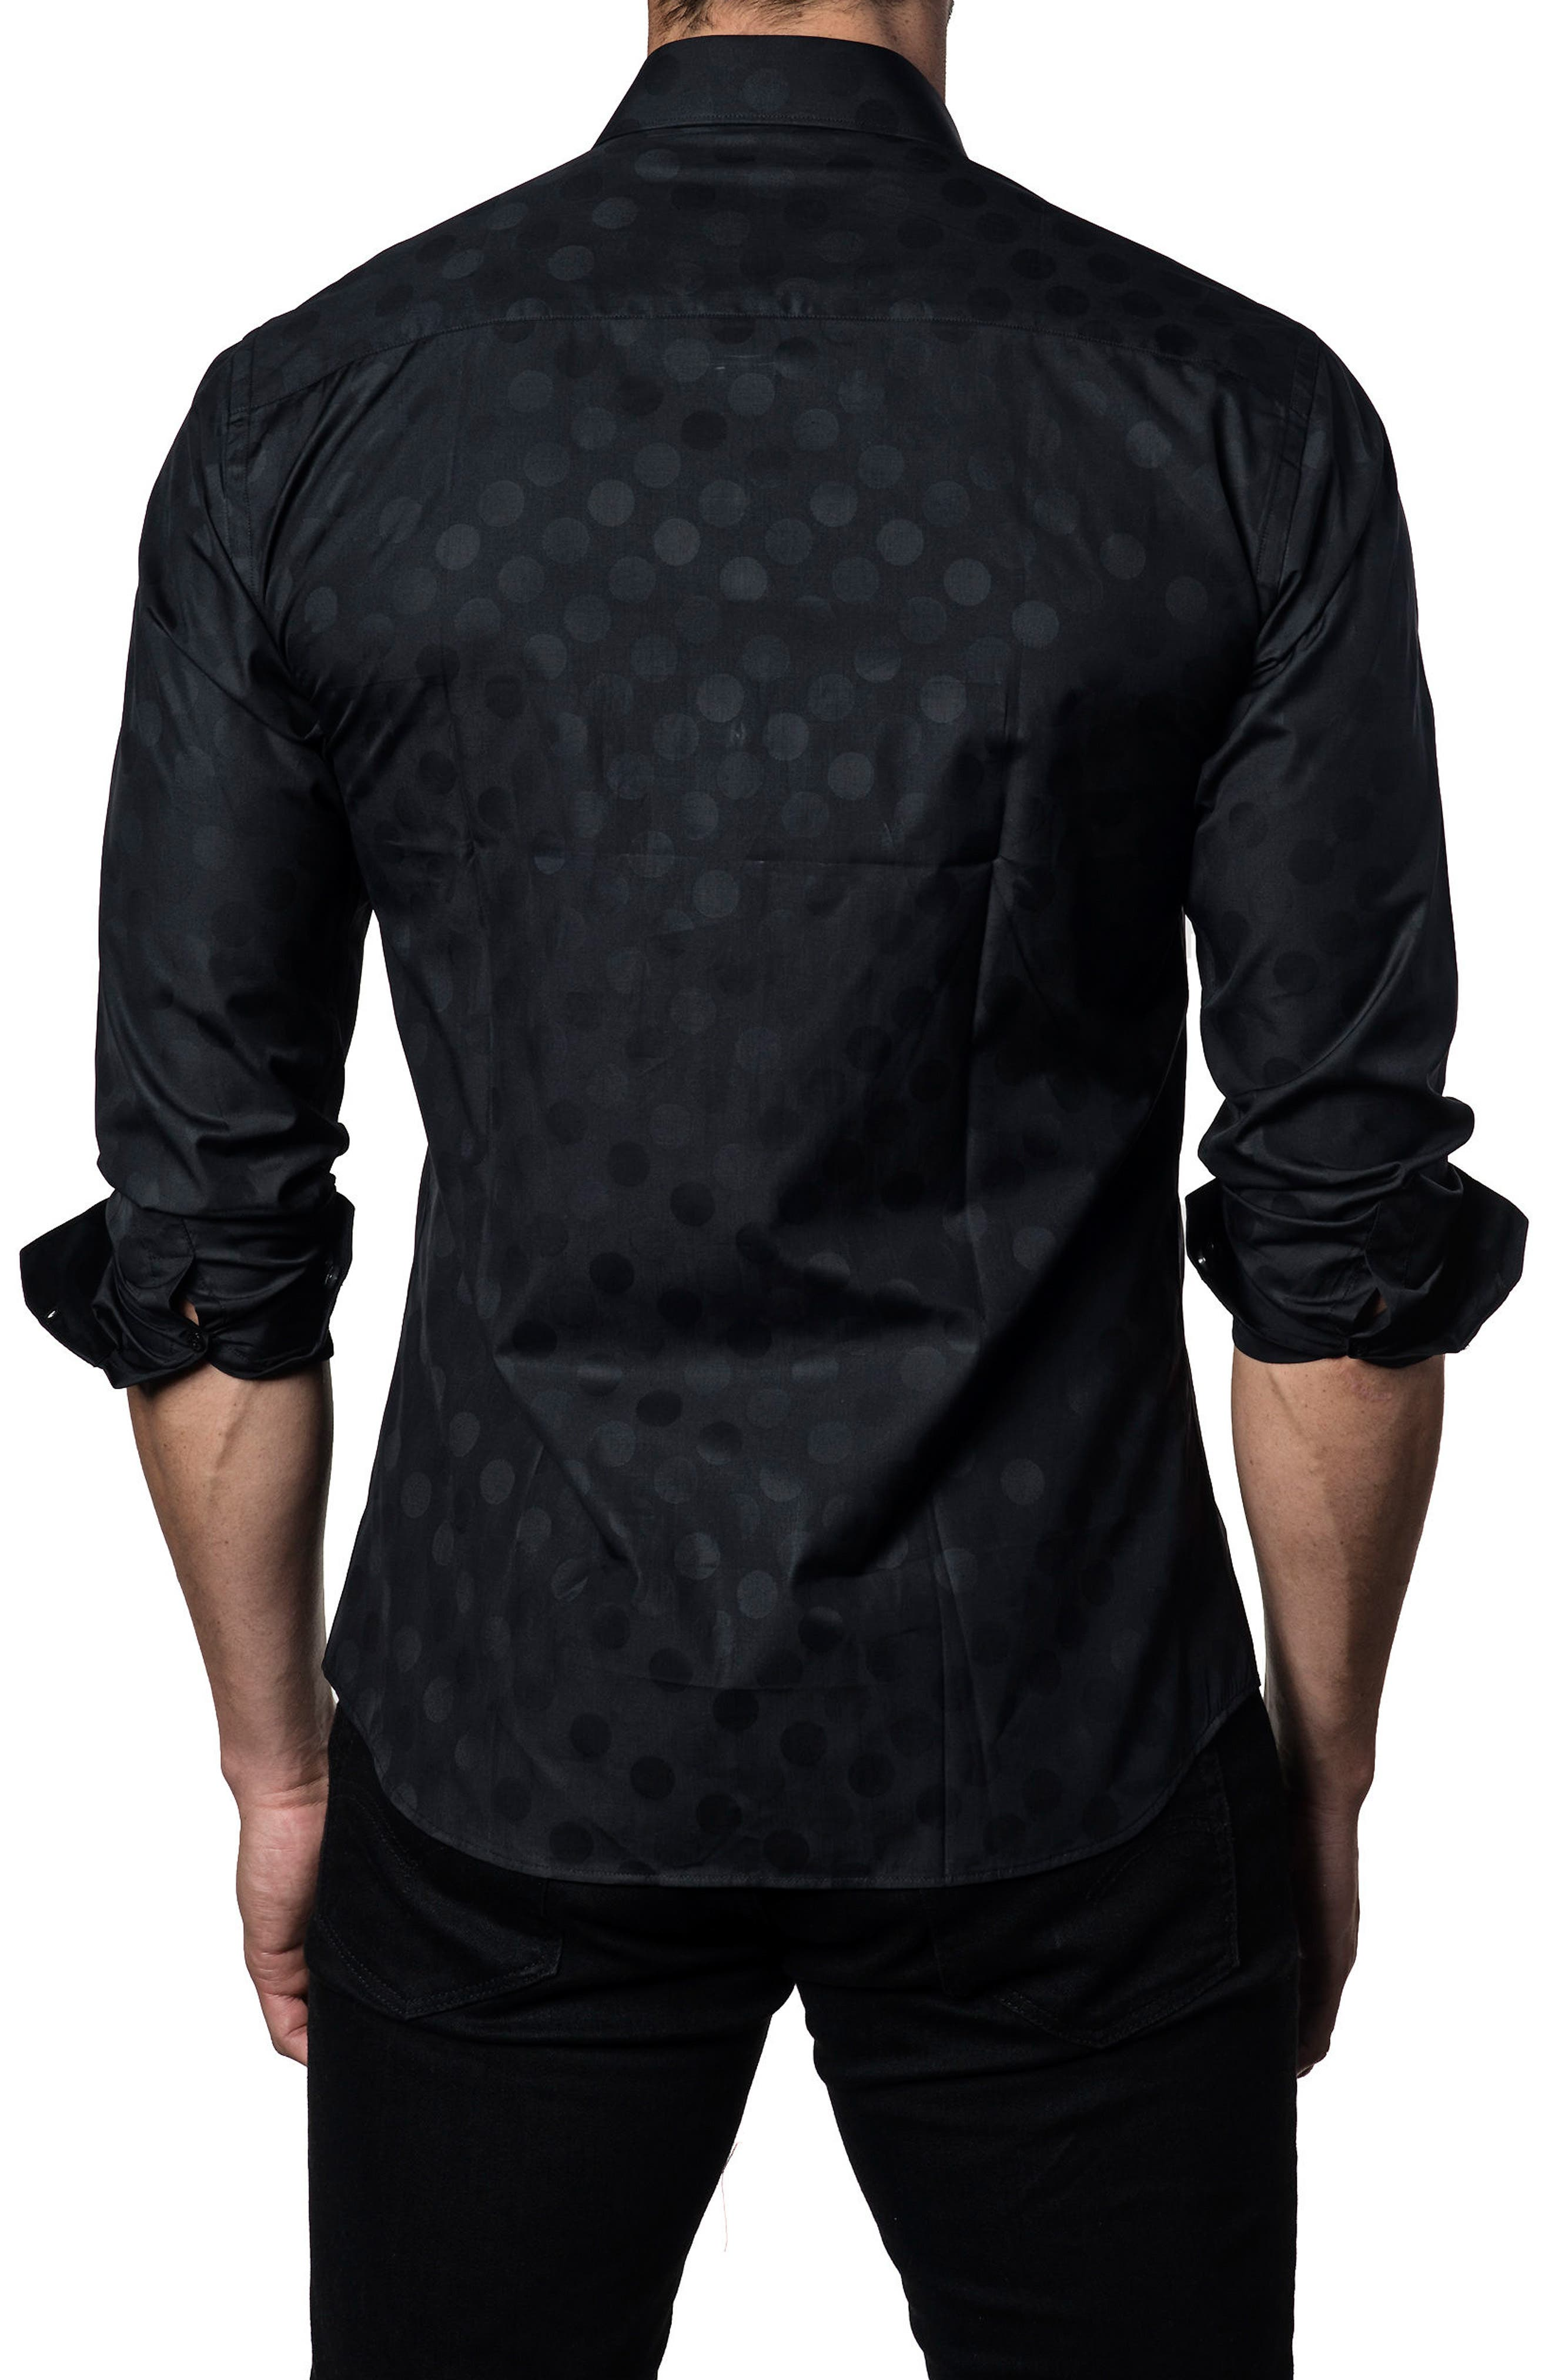 Dot Print Sport Shirt,                             Alternate thumbnail 2, color,                             Black Polka Dot Jacquard